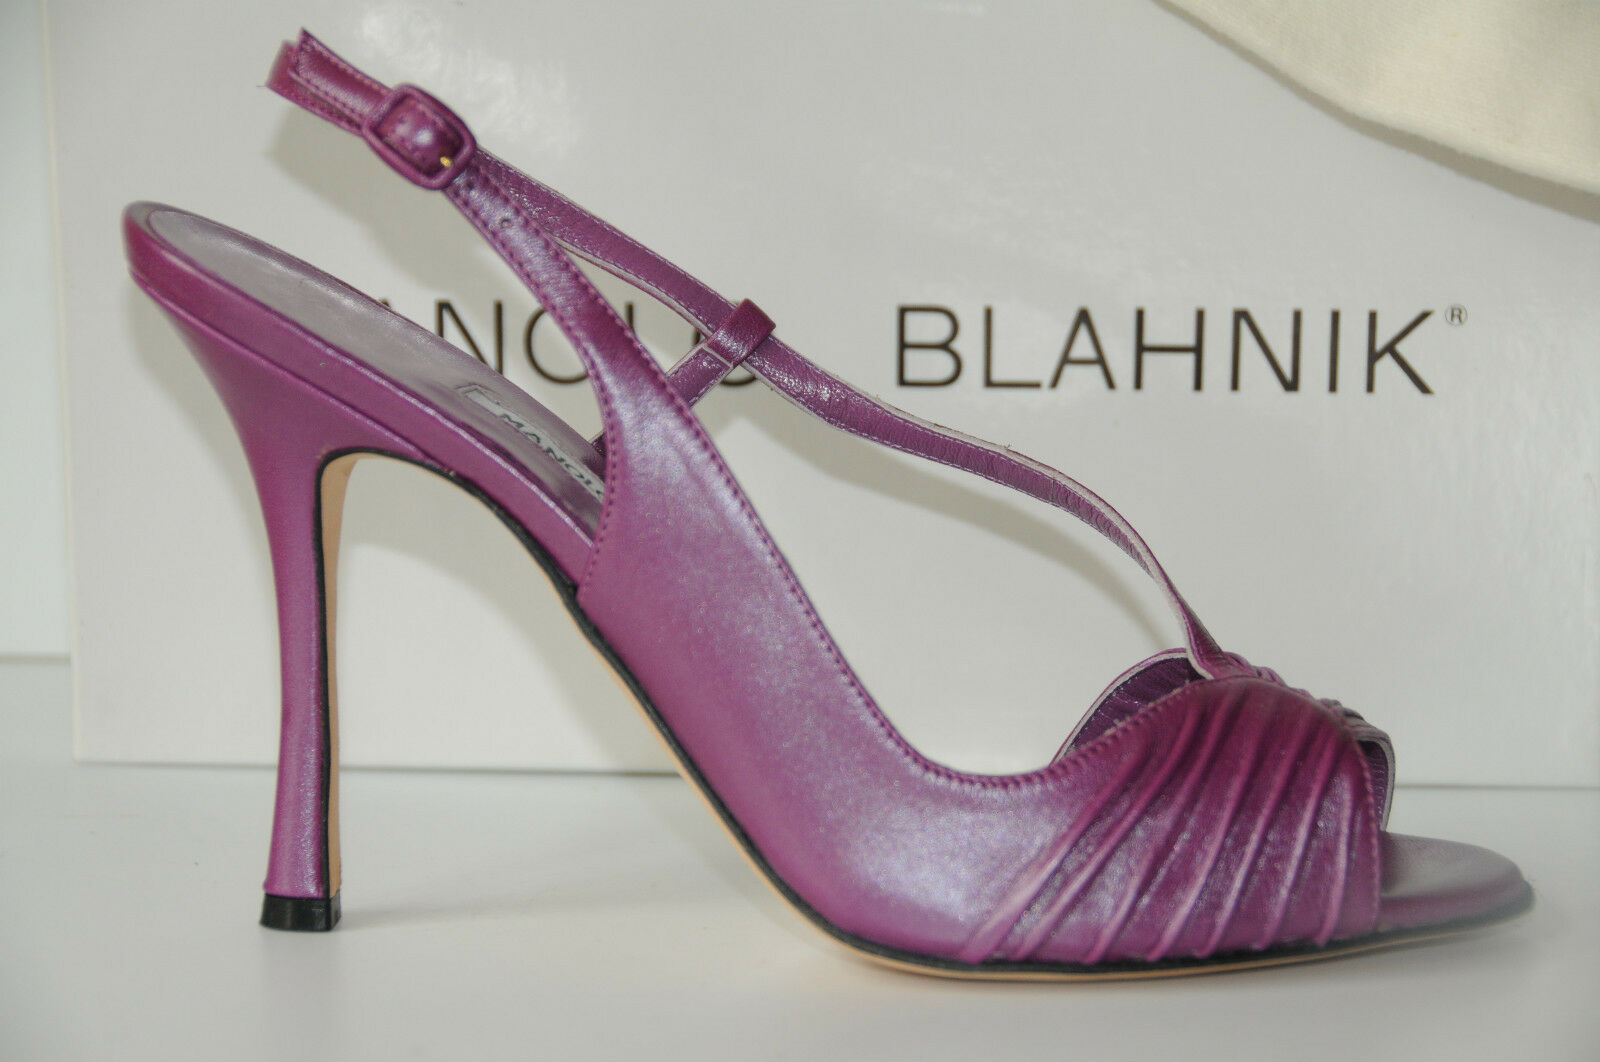 $925 New Manolo Blahnik Riccia Riccia Riccia 105 Purple Sheen  Leder schuhes Sandals 40.5 714534